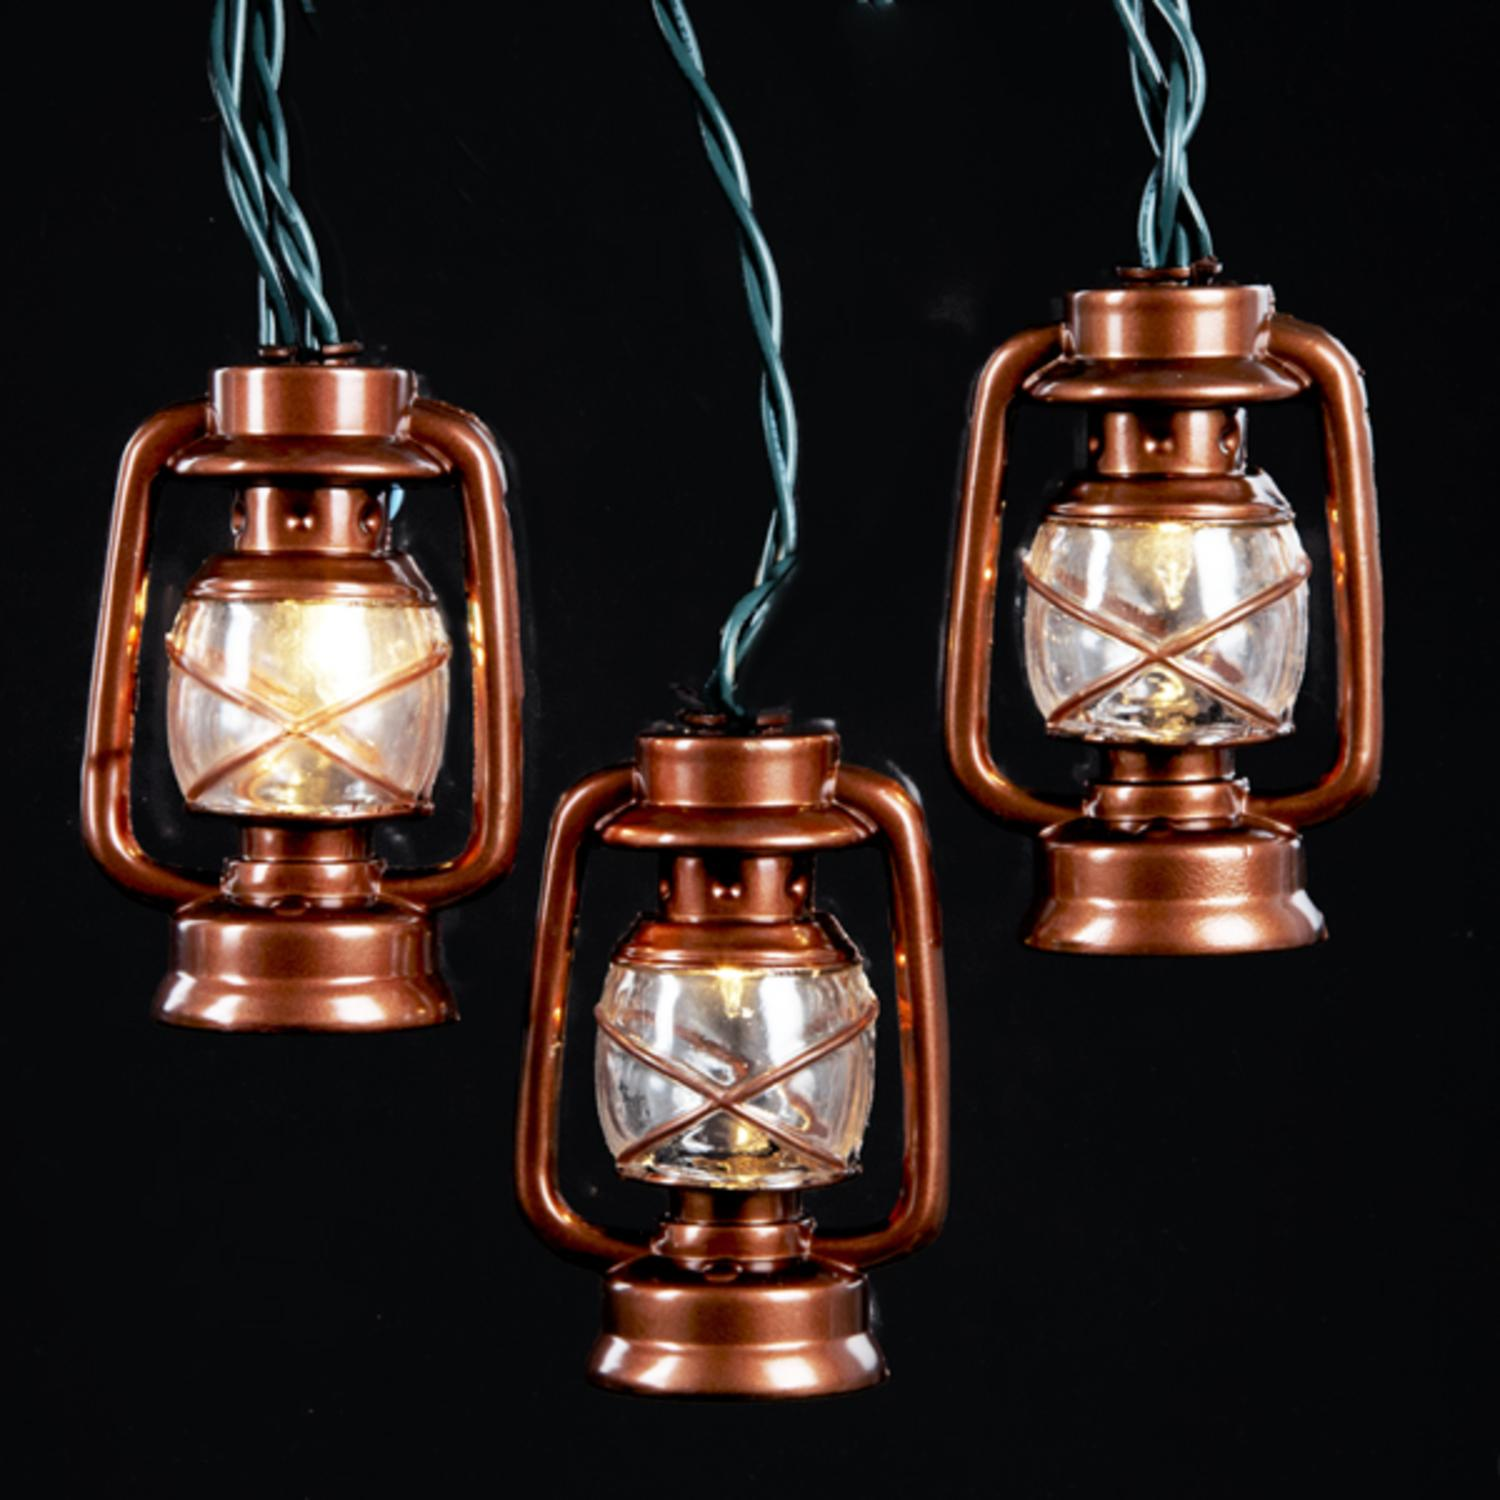 Set of 10 Brass Lantern Novelty Christmas Lights - Green Wire